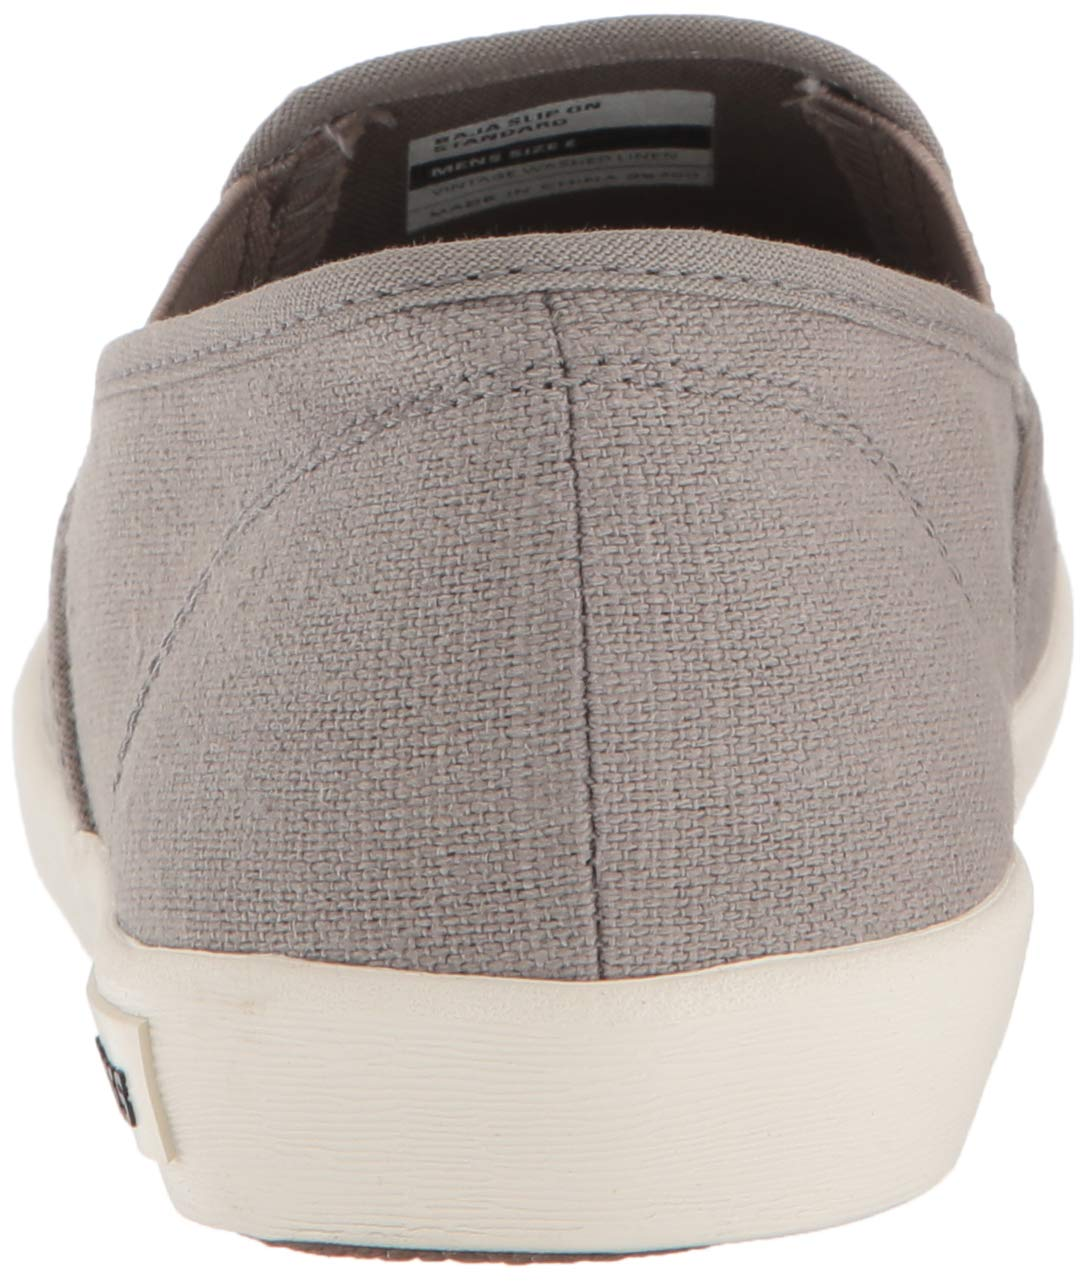 SeaVees Men's Baja Slip On Standard Casual Sneaker,Tin Grey, 12 by SeaVees (Image #2)